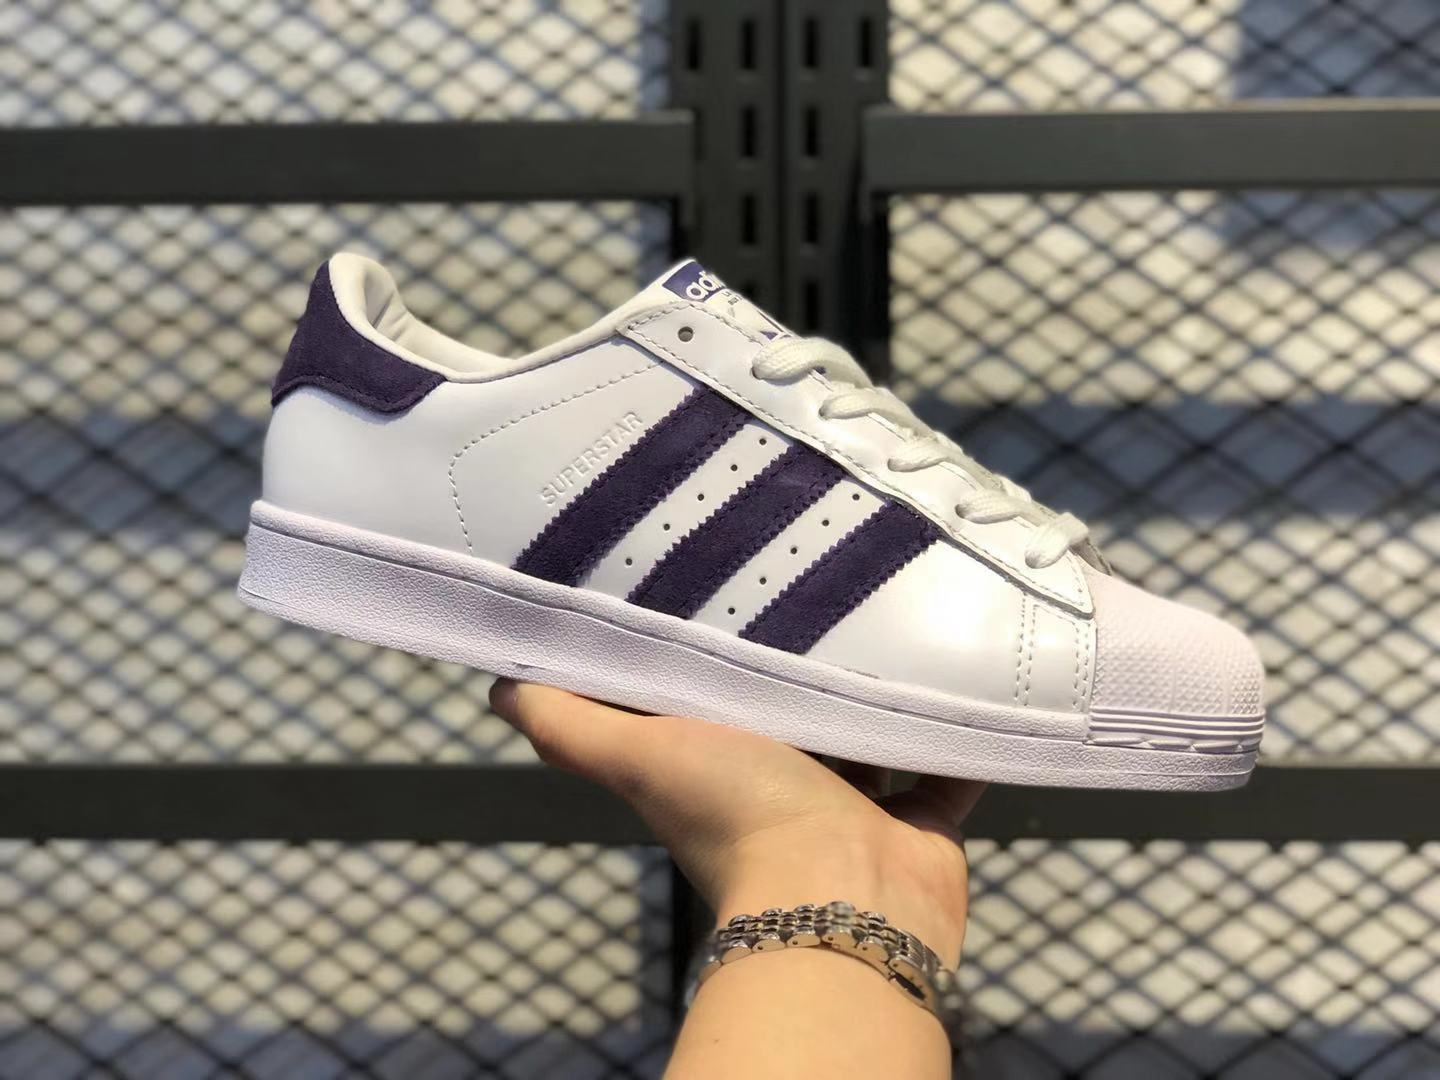 Adidas Superstar White/Dark Blue EF9241 Lifestyle Shoes For Online Sale